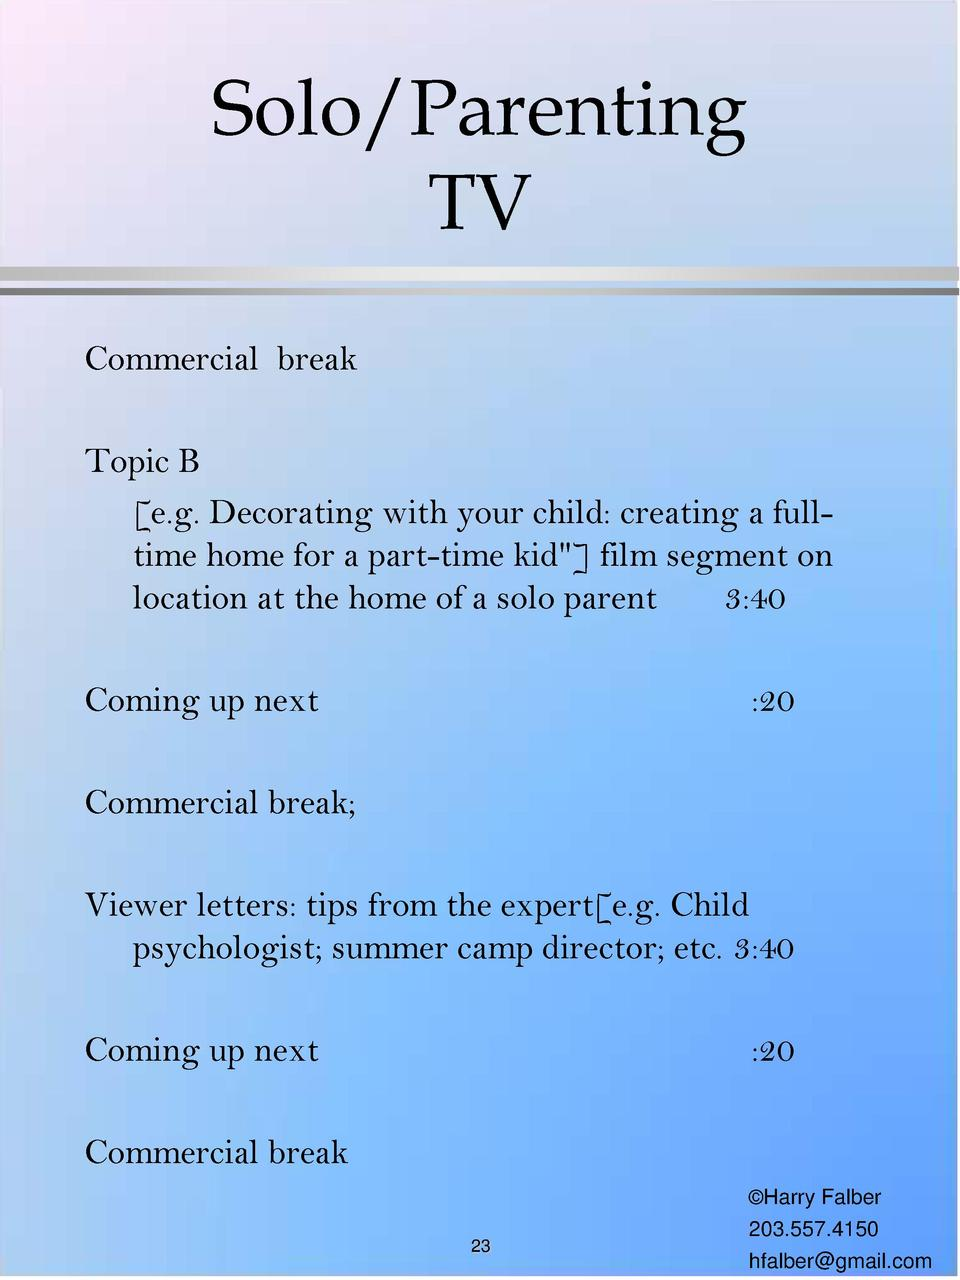 Solo Parenting TV Commercial break Topic B  e.g. Decorating with your child  creating a fulltime home for a part-time kid ...